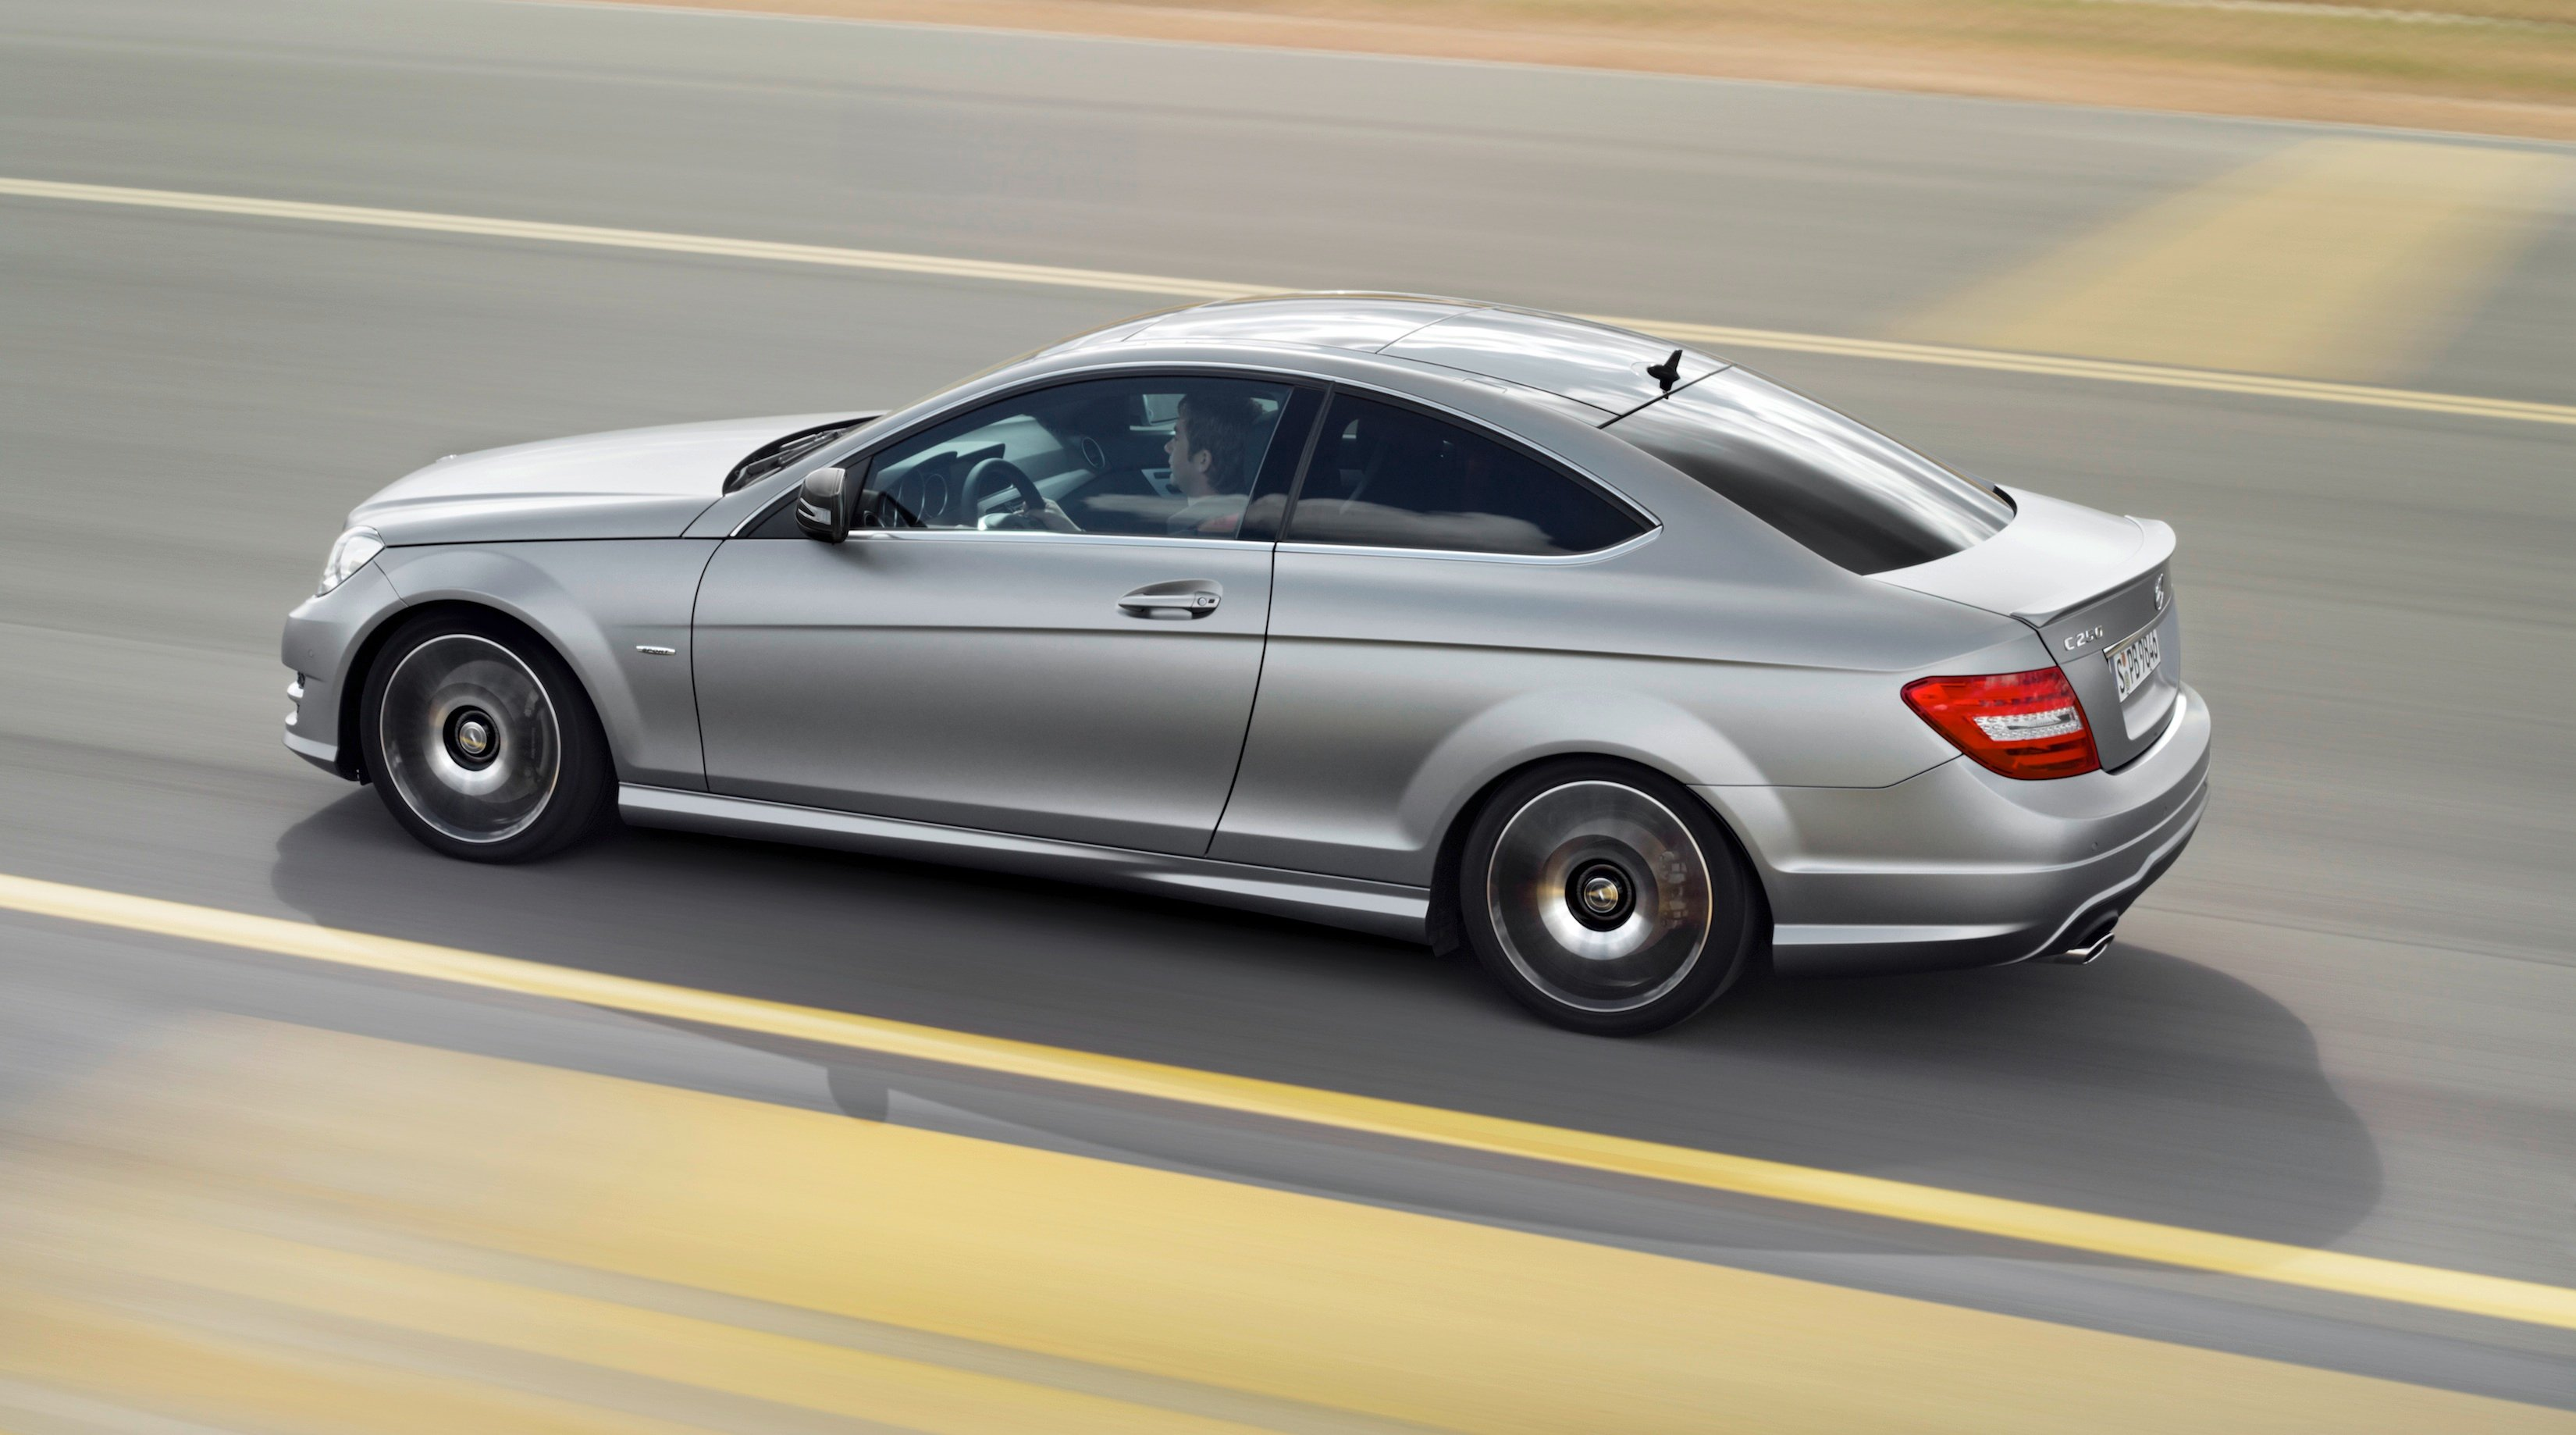 Mercedes Benz C250 Coupe Sport Adds Amg Visuals And